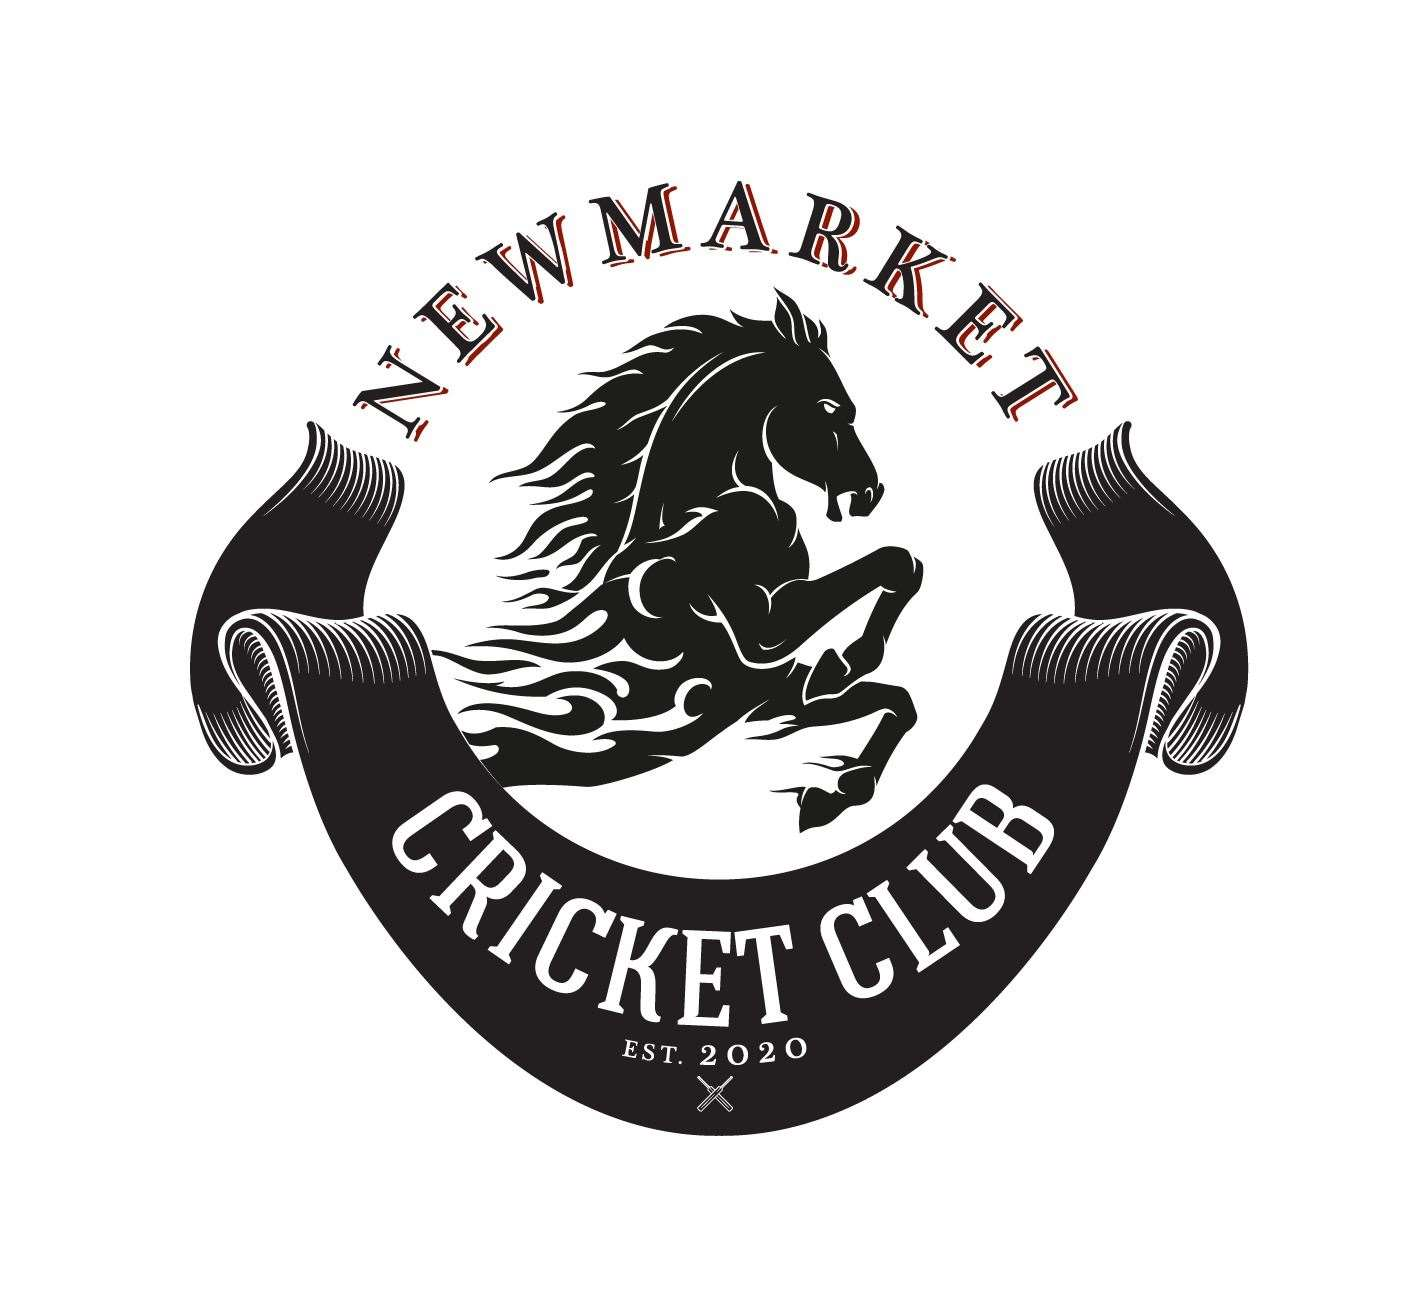 Newmarket Cricket Club are keen to launch a ladies and junior section